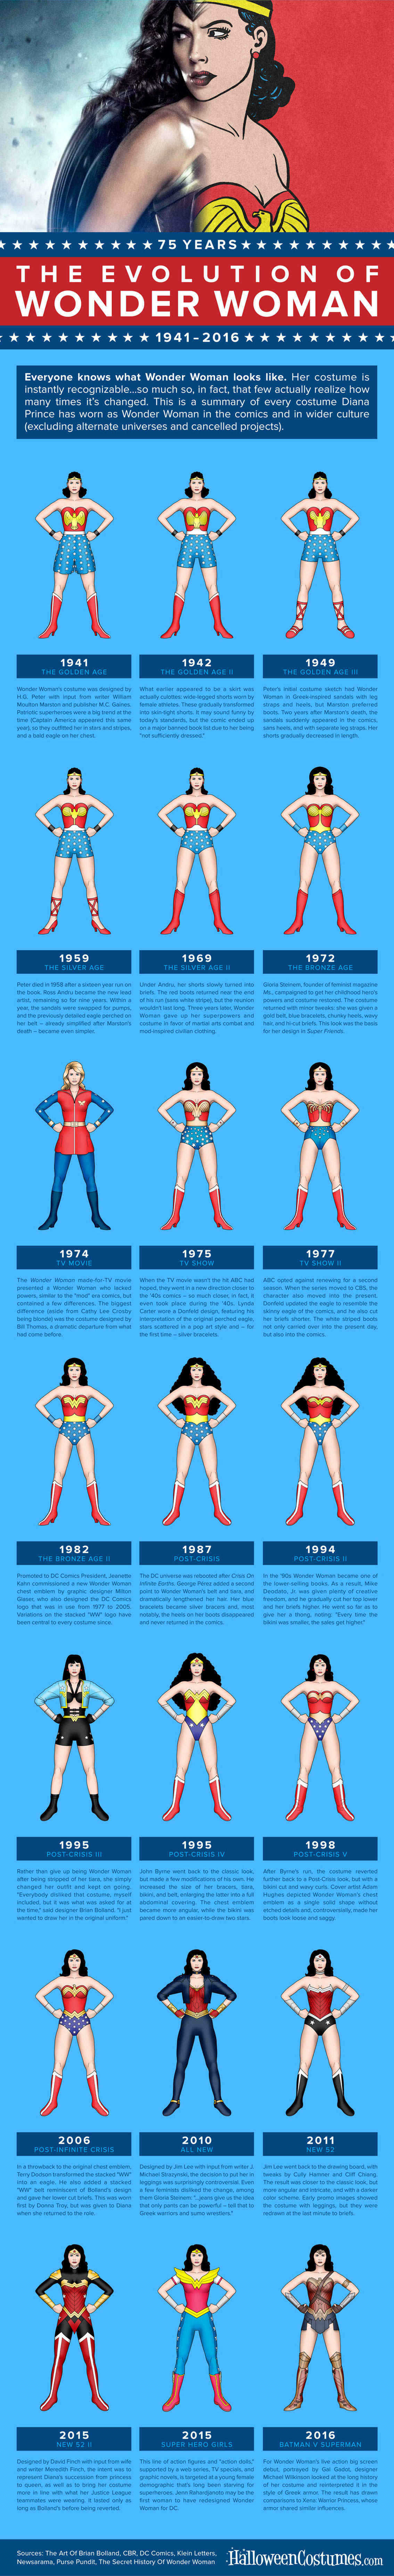 Evolution of Wonder Woman Costume - Movie Infographic